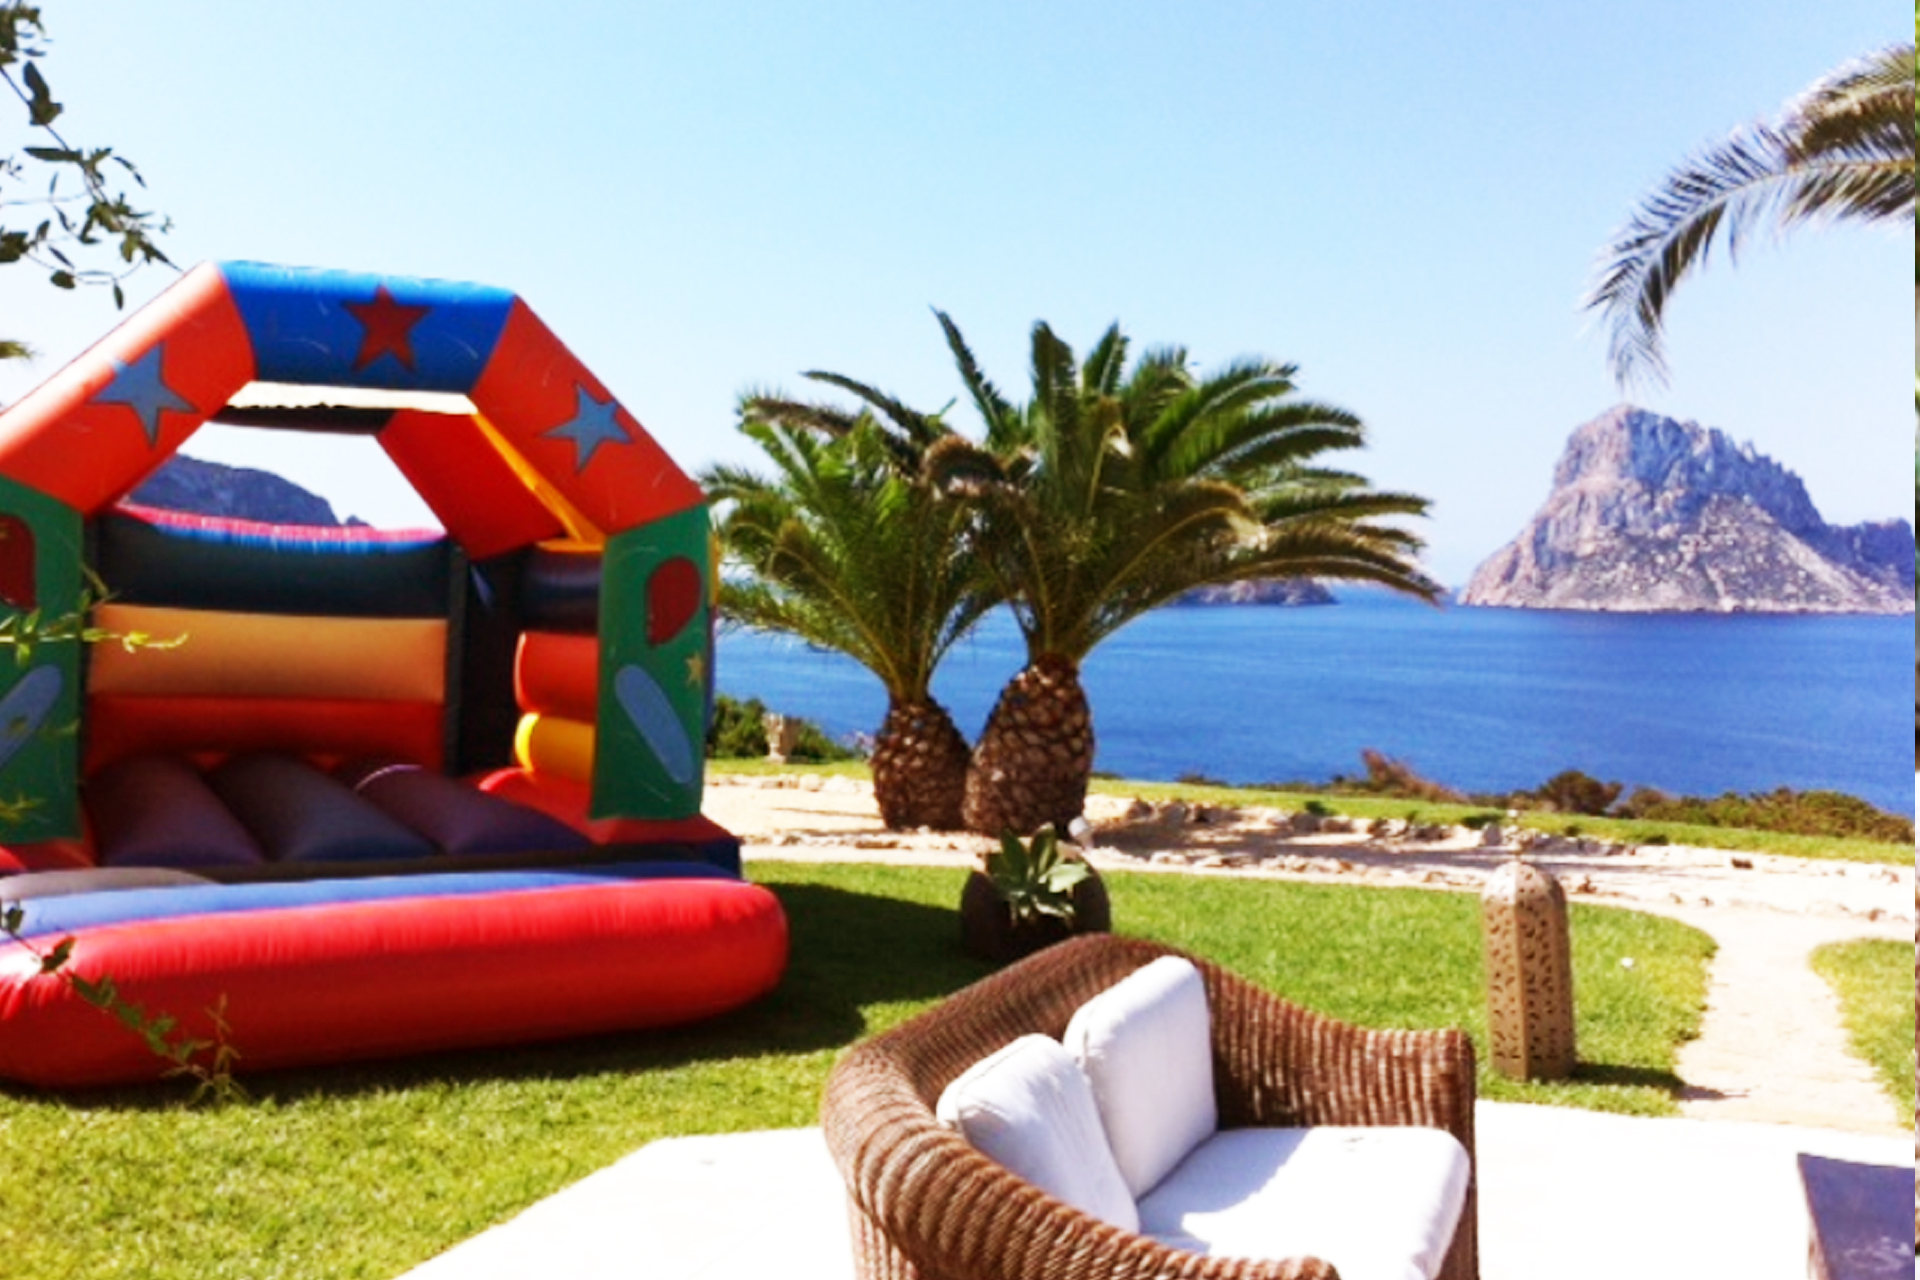 Party Time Bouncy Castle enjoying an amazing view from this private villa in Ibiza